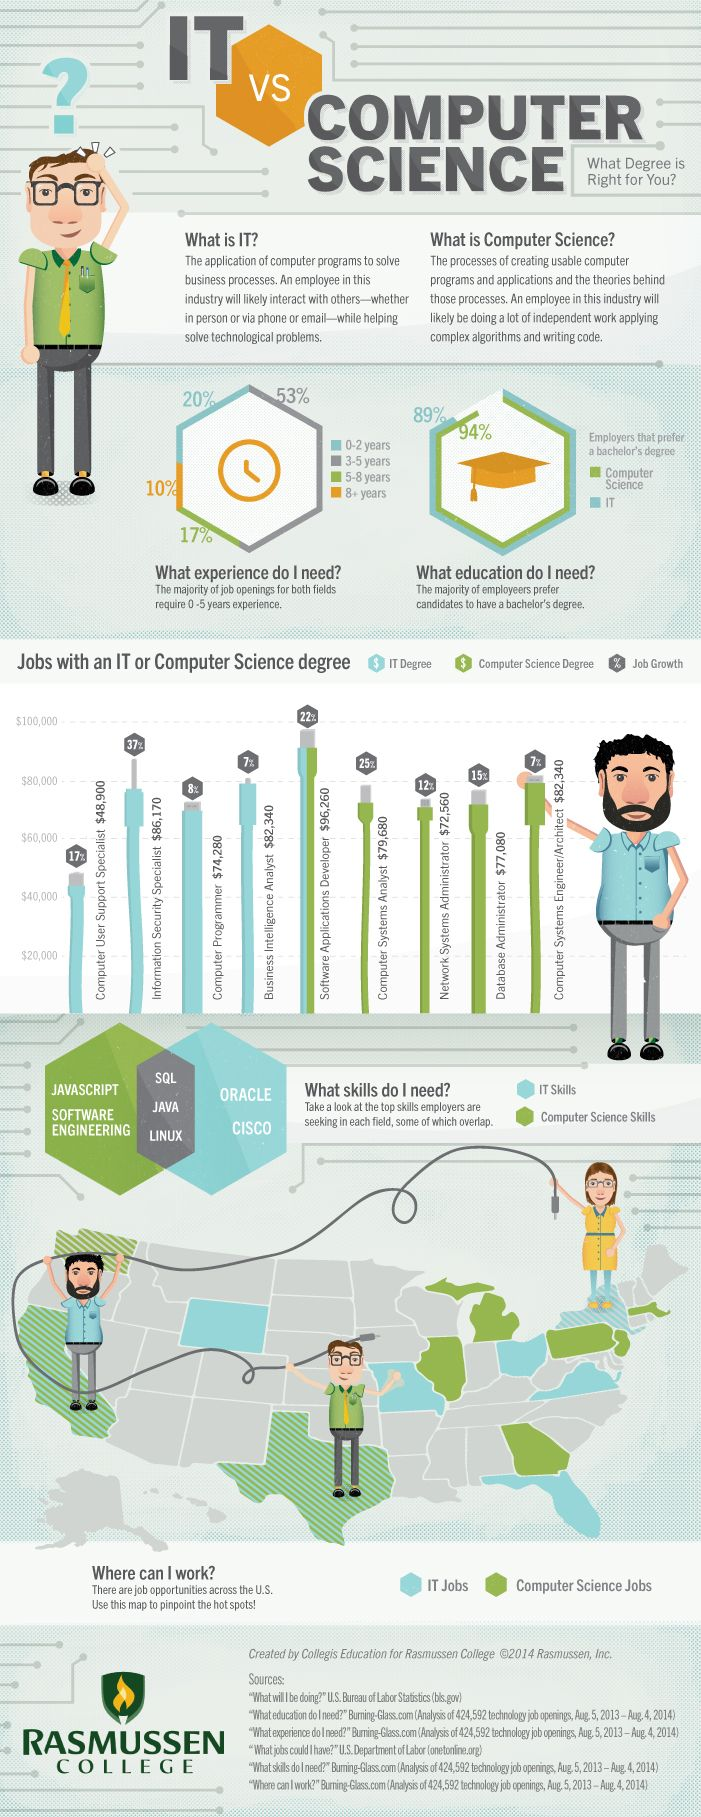 IT vs. Computer Science: What Degree is Right for You? [Infographic] #IT #TechJobs #CompSci